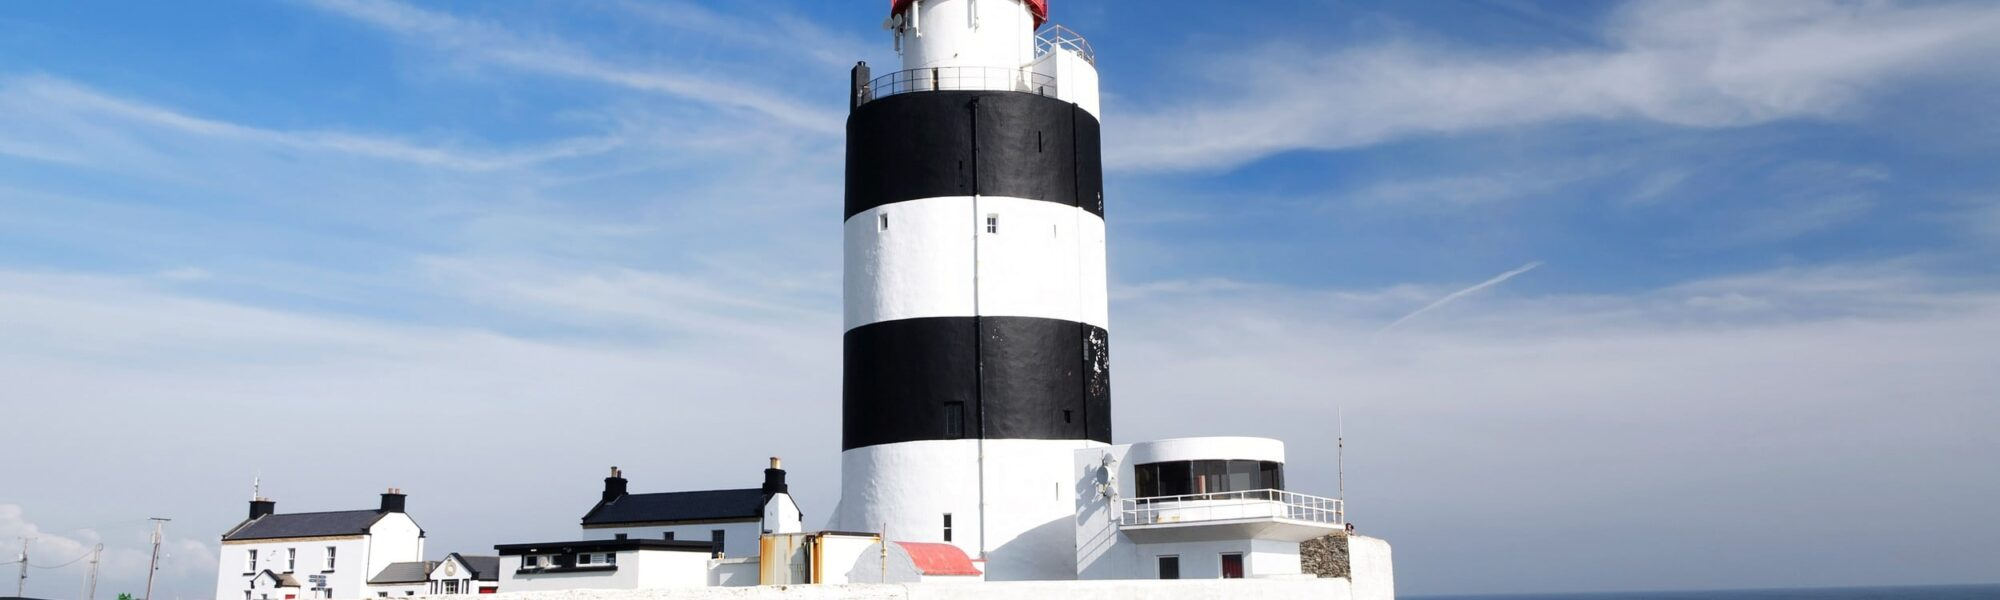 Le Hook Head Lighthouse – Michael Foley – cc